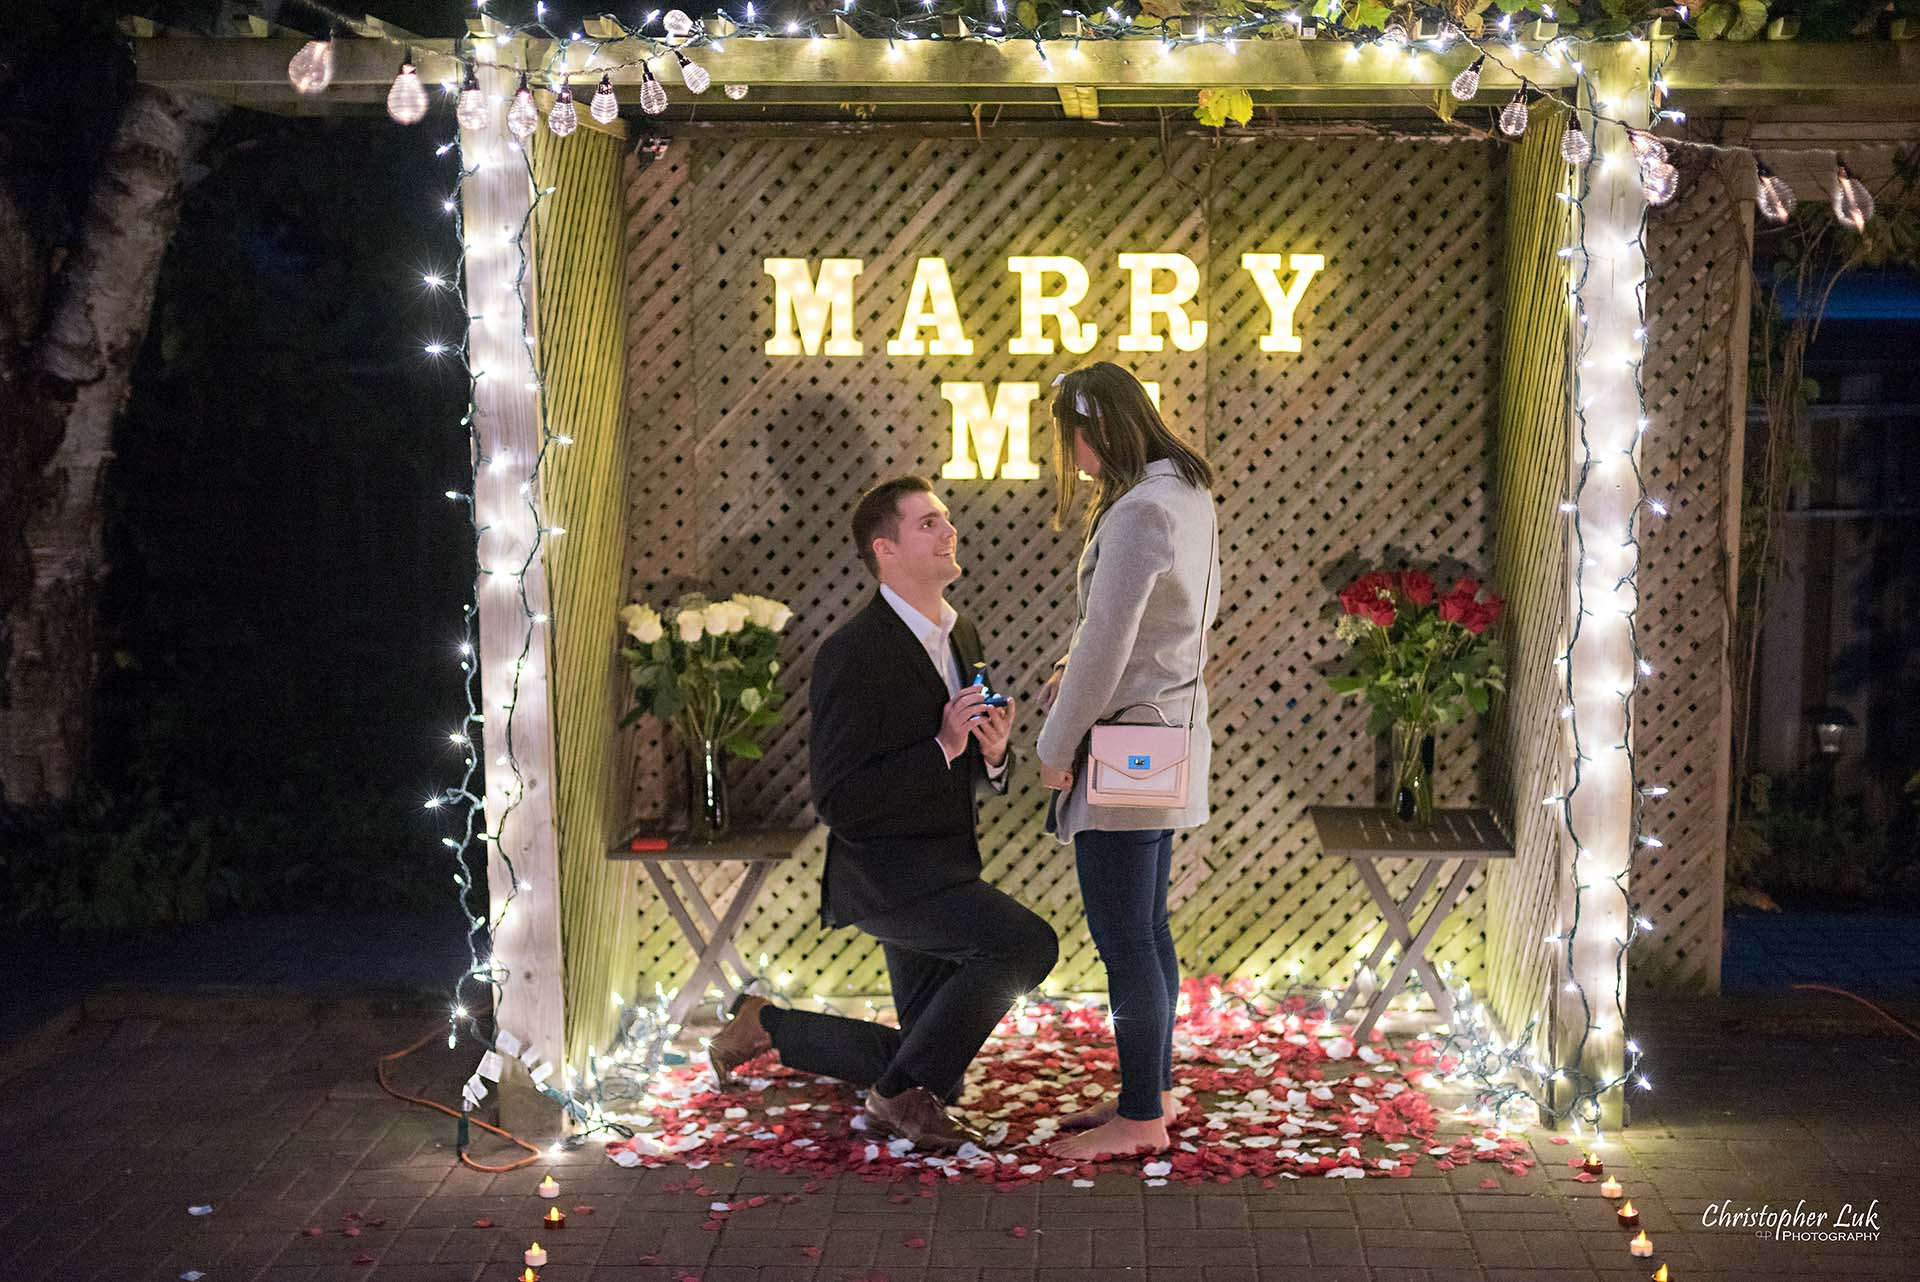 Christopher Luk Toronto Wedding Photographer - Backyard Surprise Proposal Engaged Engagement Gazebo Christmas Fairy Twinkle Lights Flower Petals Marry Me - Bride and Groom Natural Candid Photojournalistic Down on One Knee